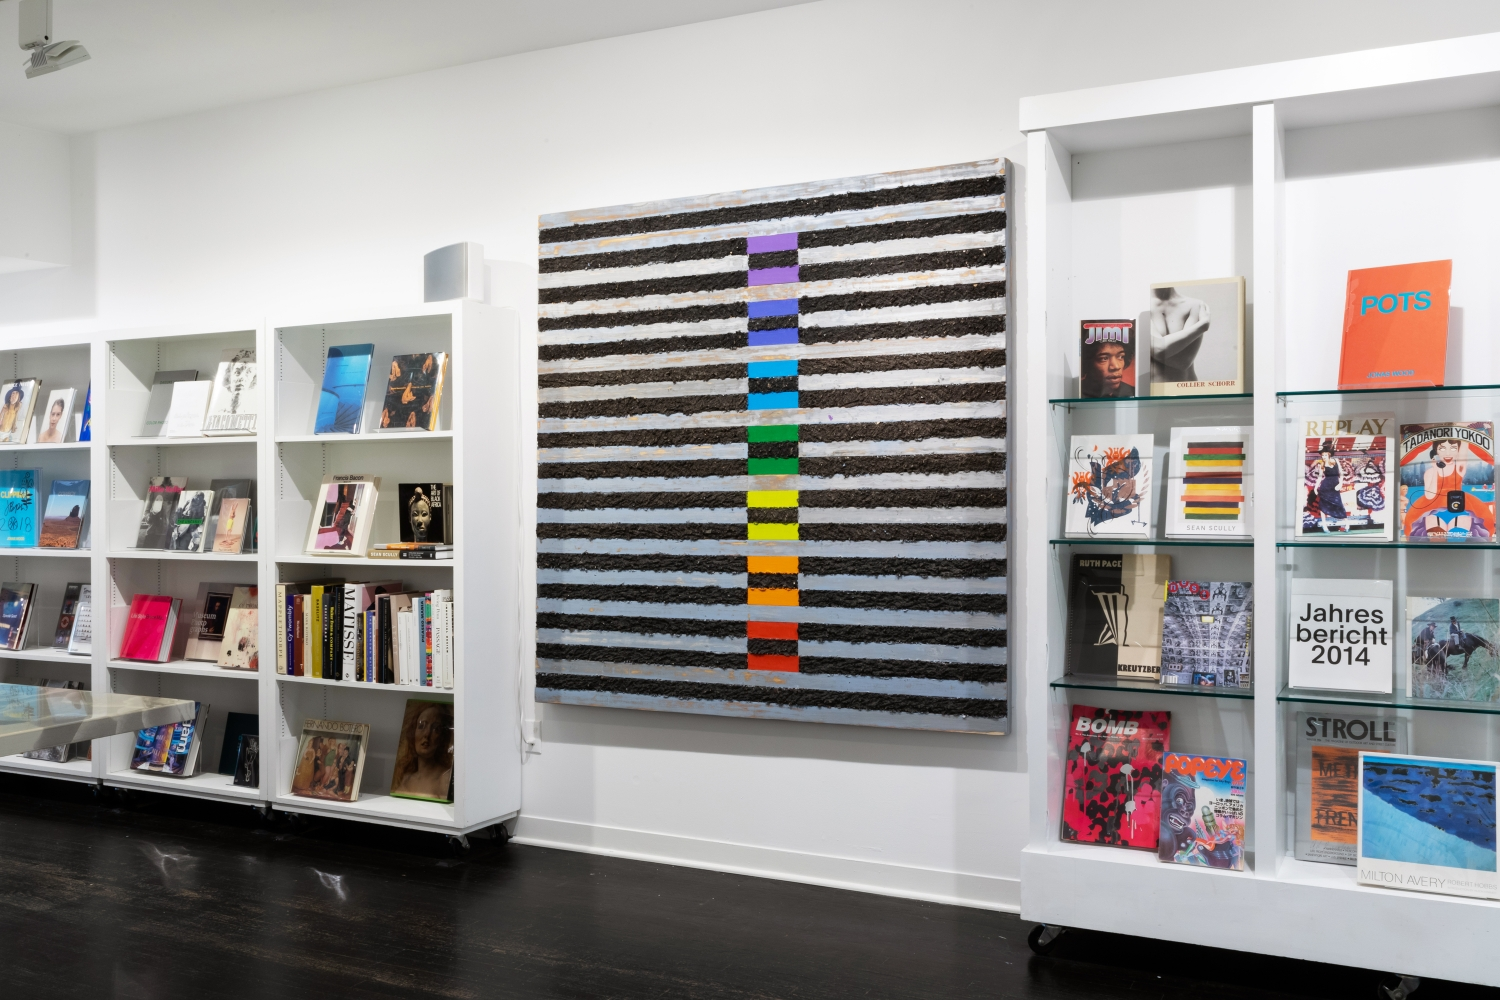 Kevin Teare: L'ecole horizontale - installation view